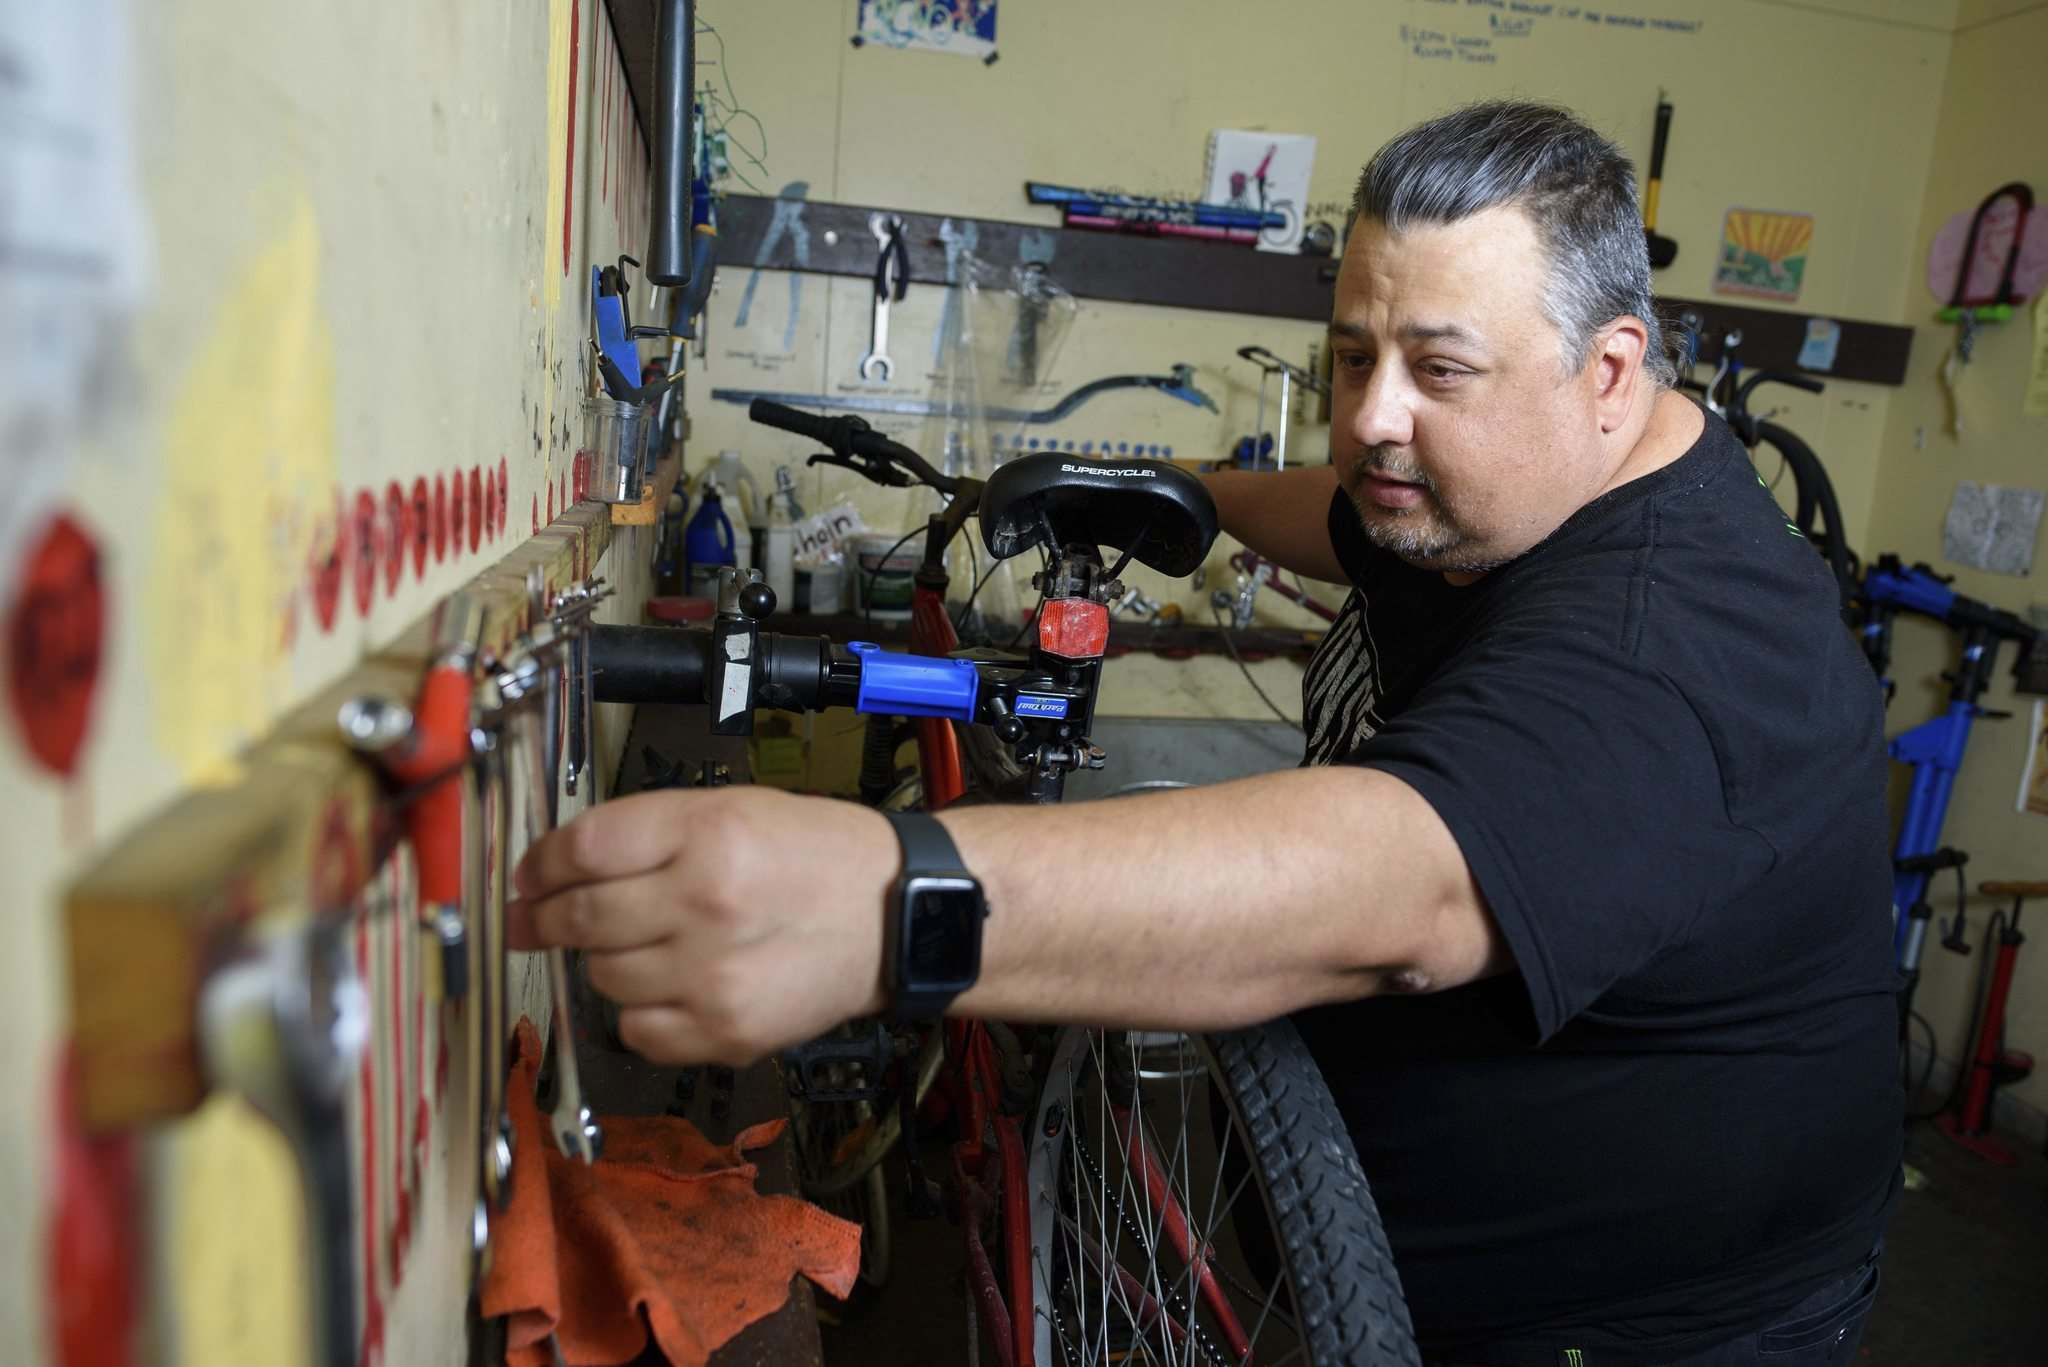 Aaron Maciejko, a volunteer at Orioles Bike Cage, a community bicycle shop that helps people repair and maintain their bicycles, works on a bike. (Jesse Boily / Winnipeg Free Press)</p>